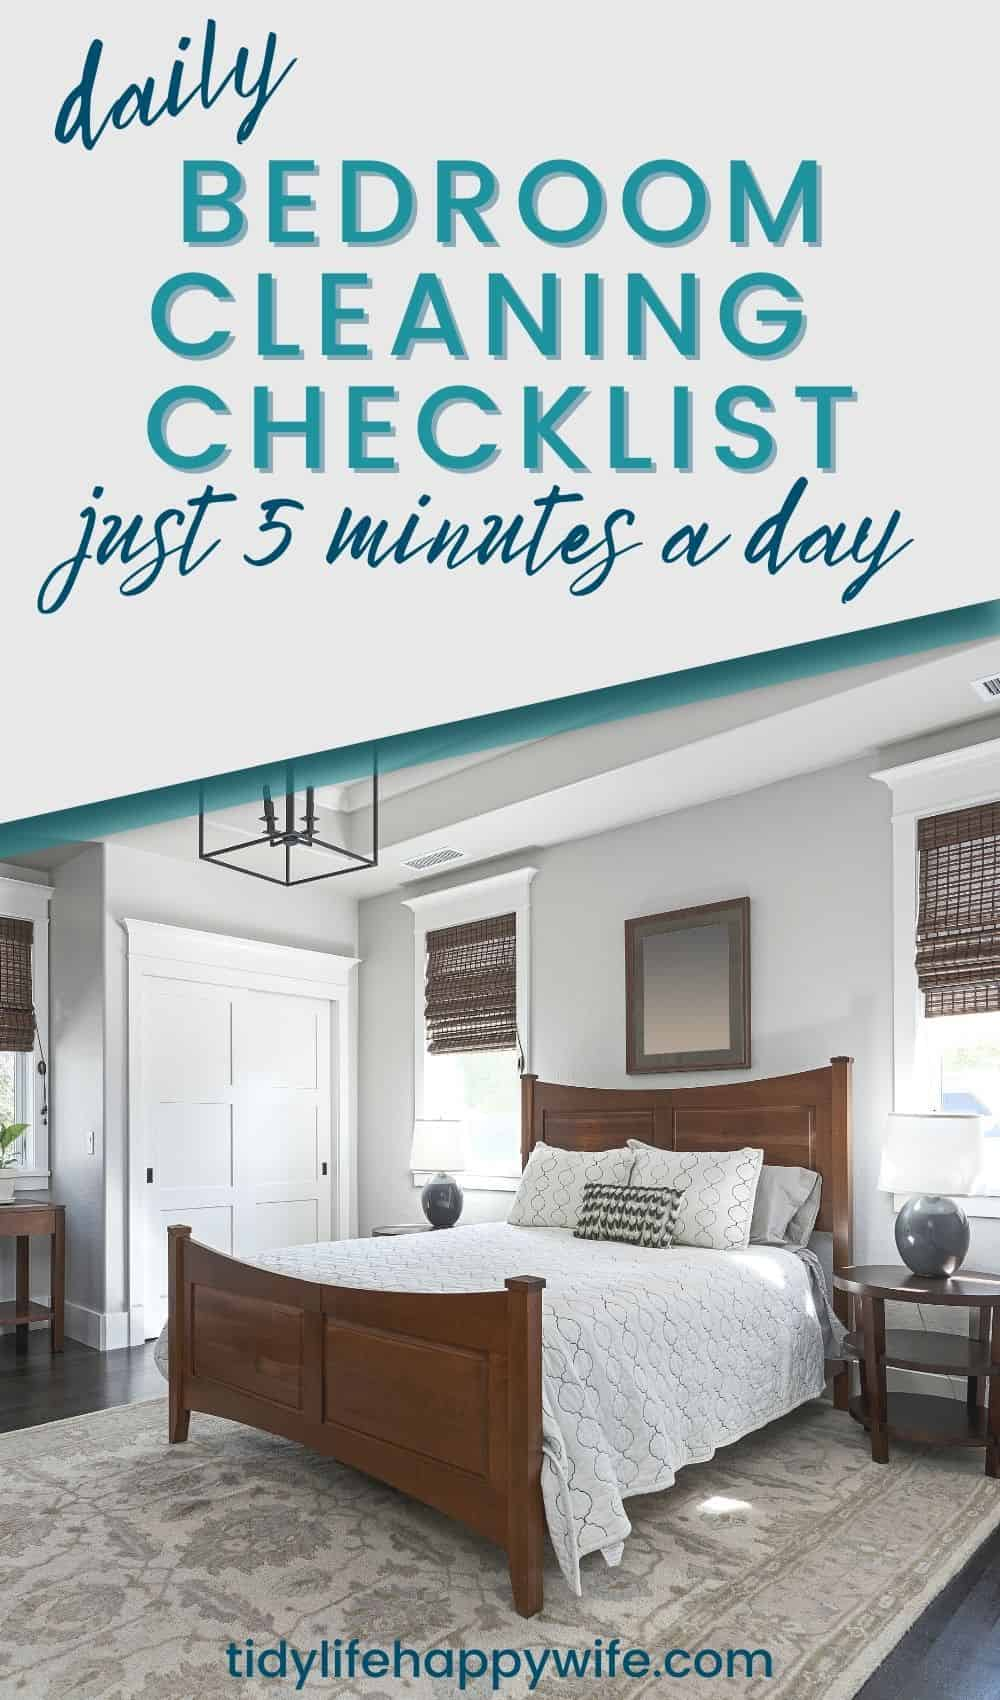 Keep your bedroom clean and tidy with this 5 minute daily bedroom cleaning checklist.  via @Tidylifehappywife